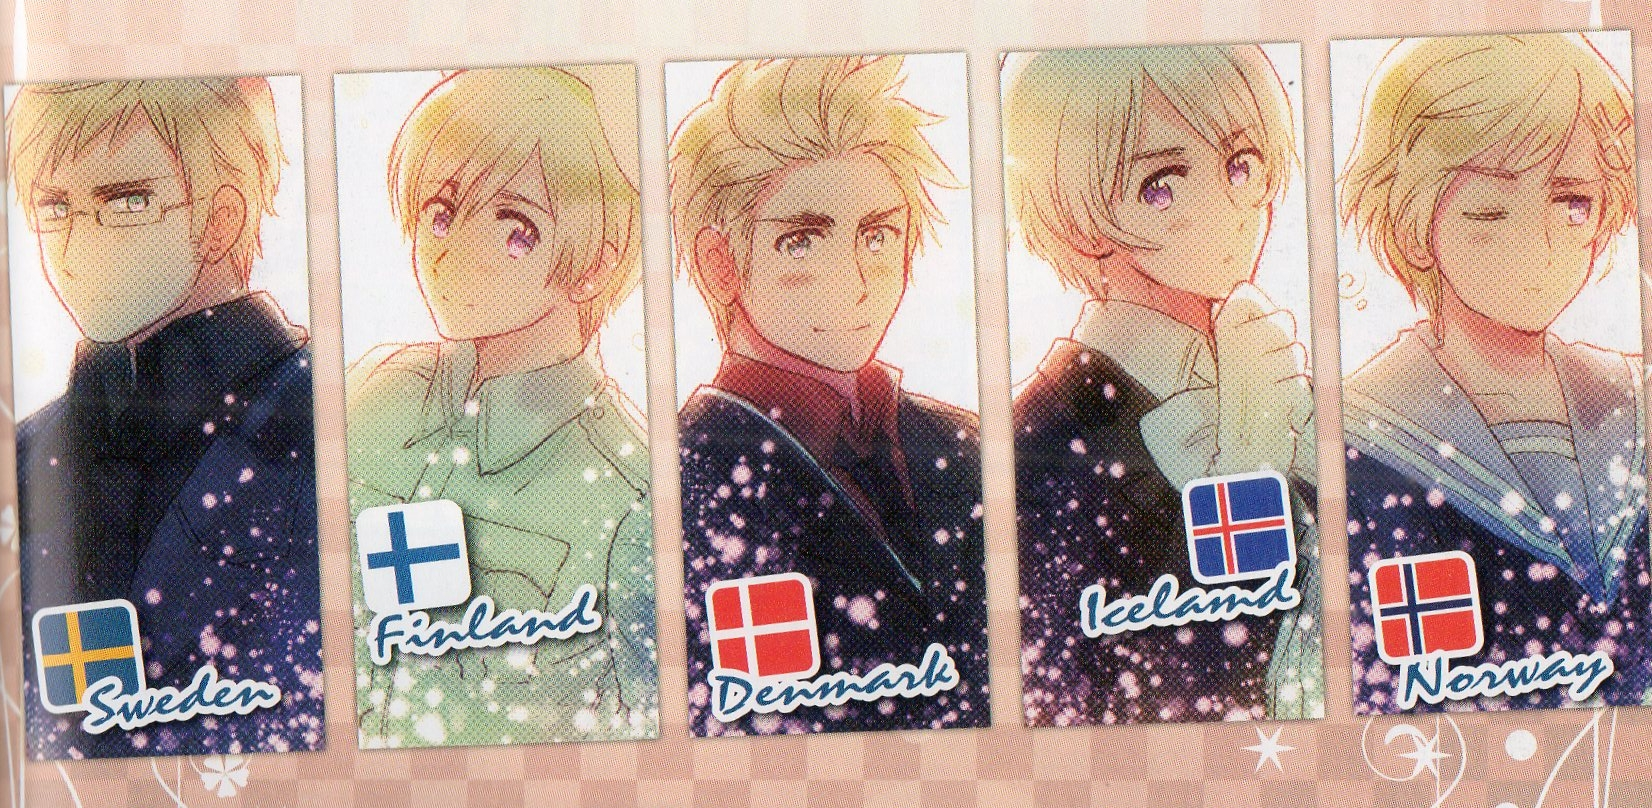 hetalia nordics wallpaperHetalia FranceCutest Hetalia 3sir 1652x808